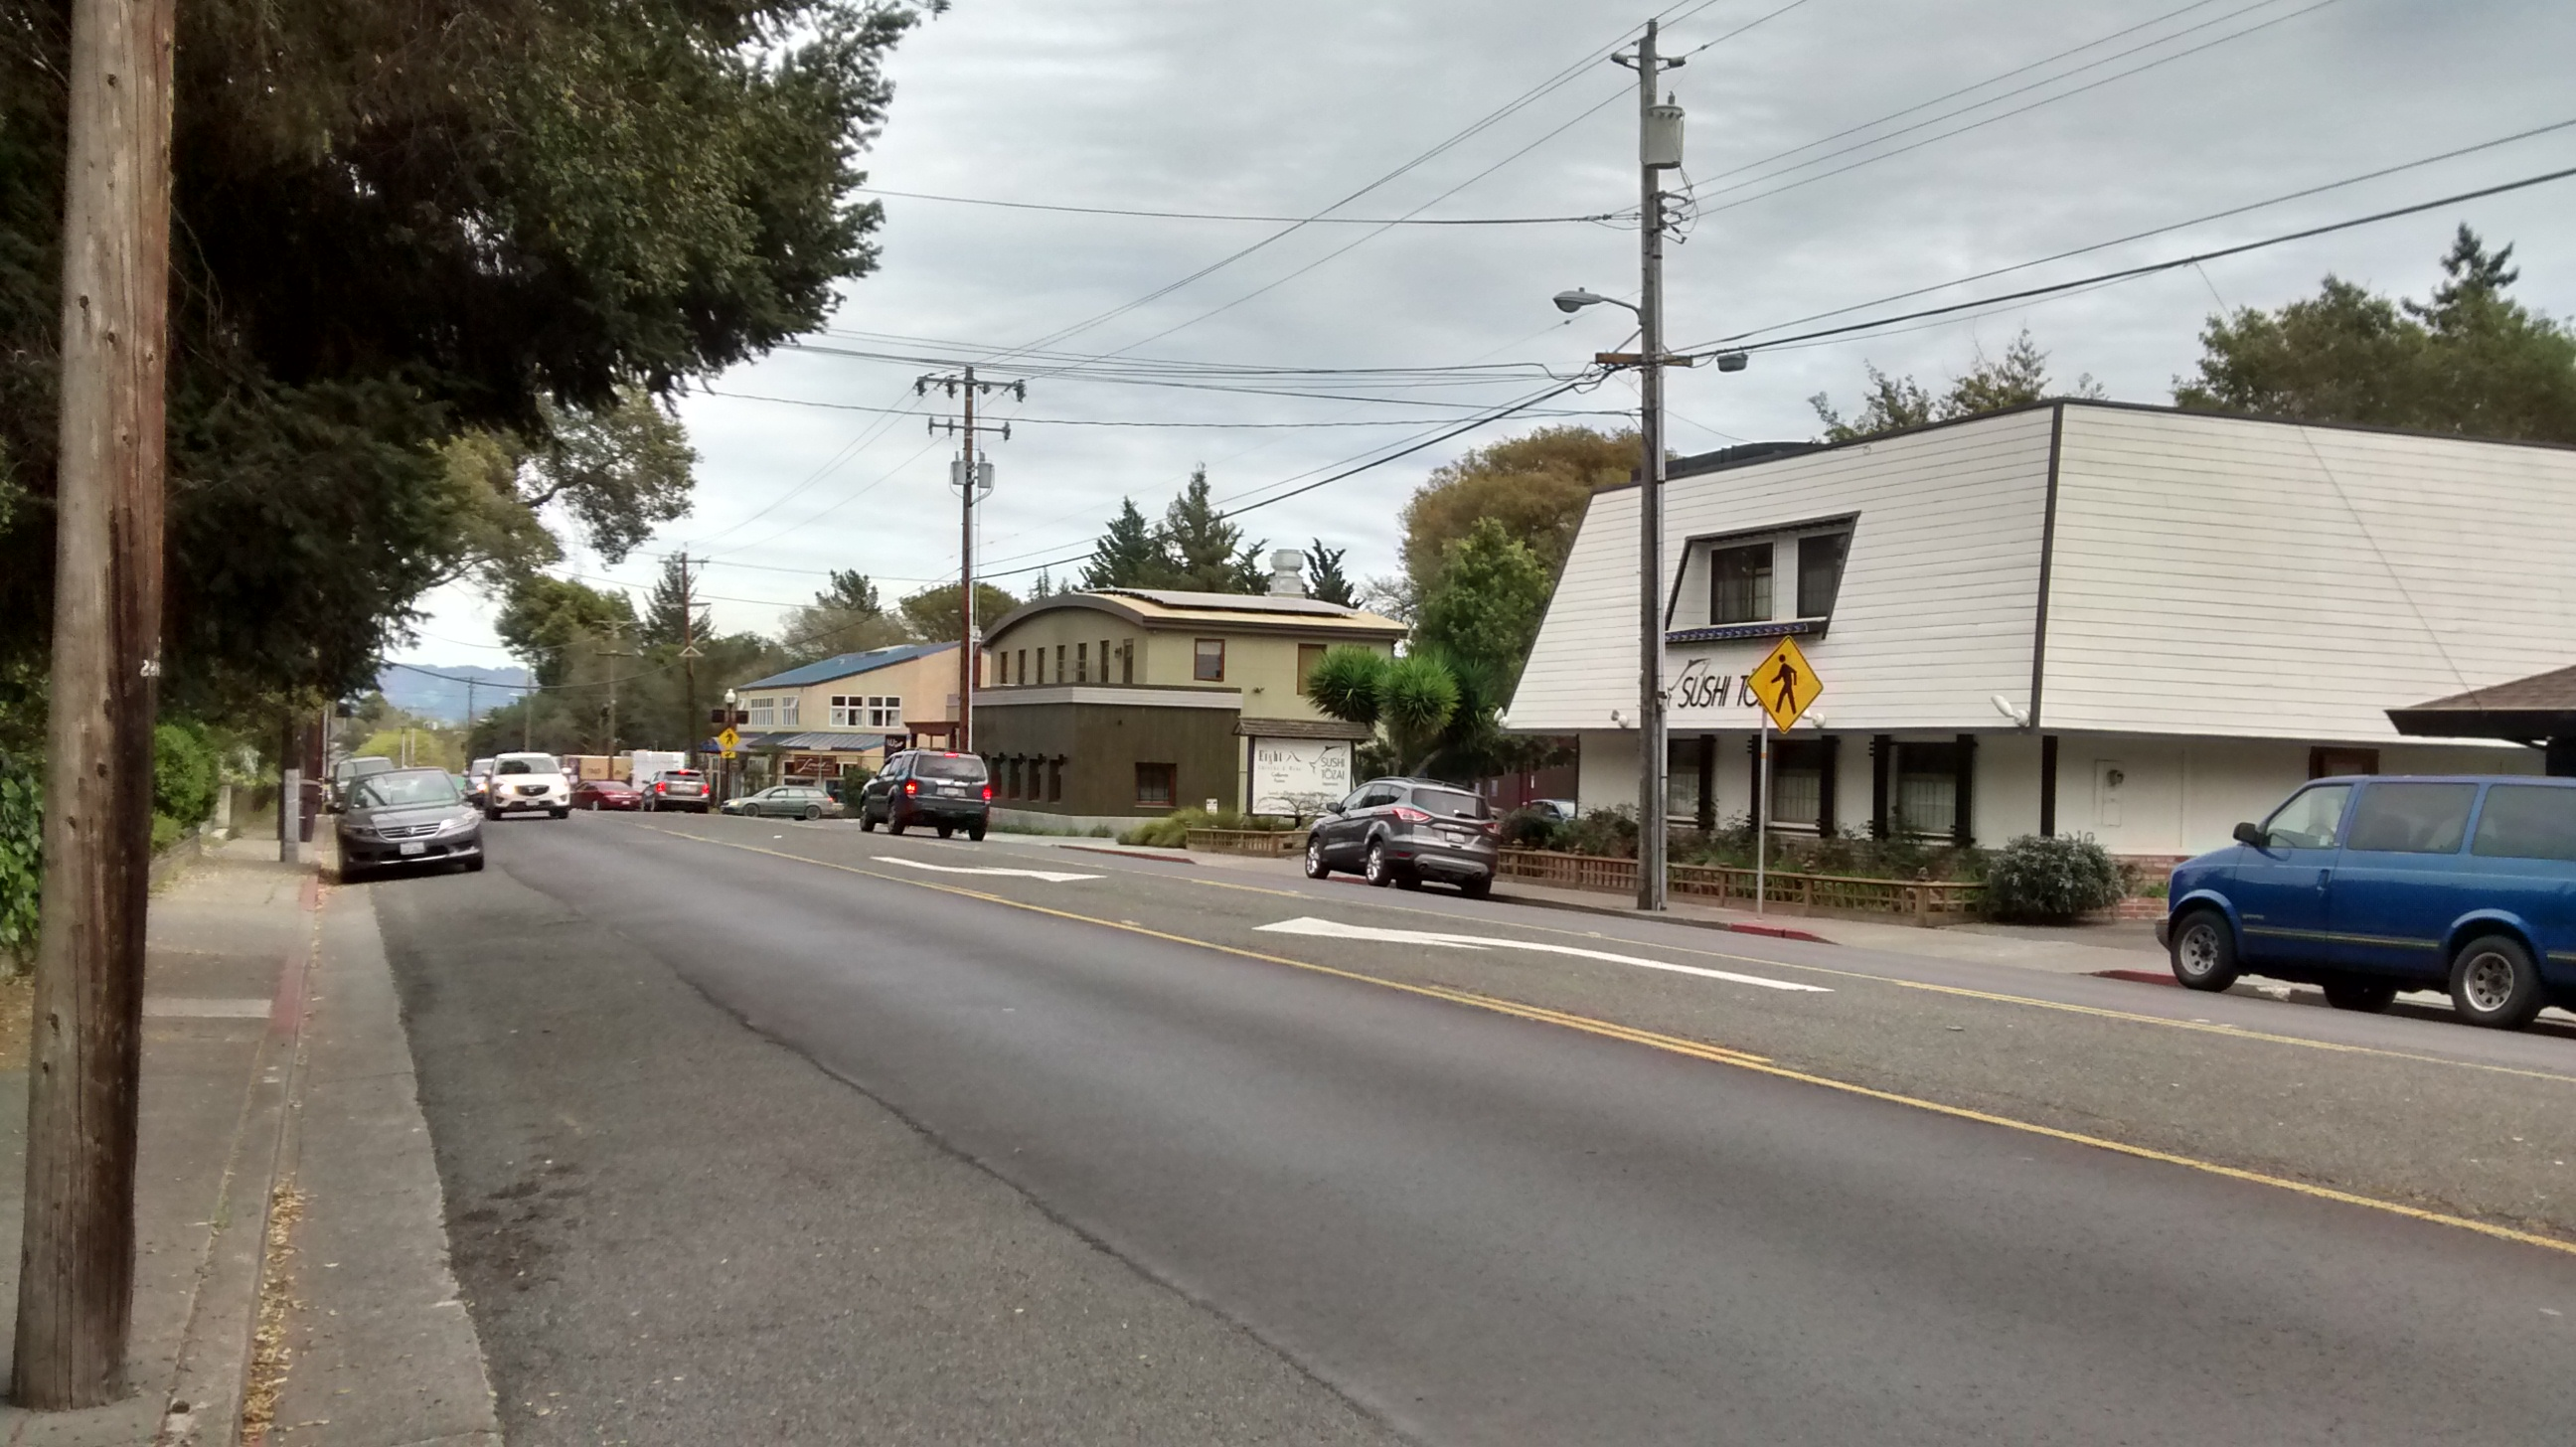 A couple new projects and a renovation are creating a restaurant/commercial hub on Healdsburg Ave. about a block away from the strip development above.